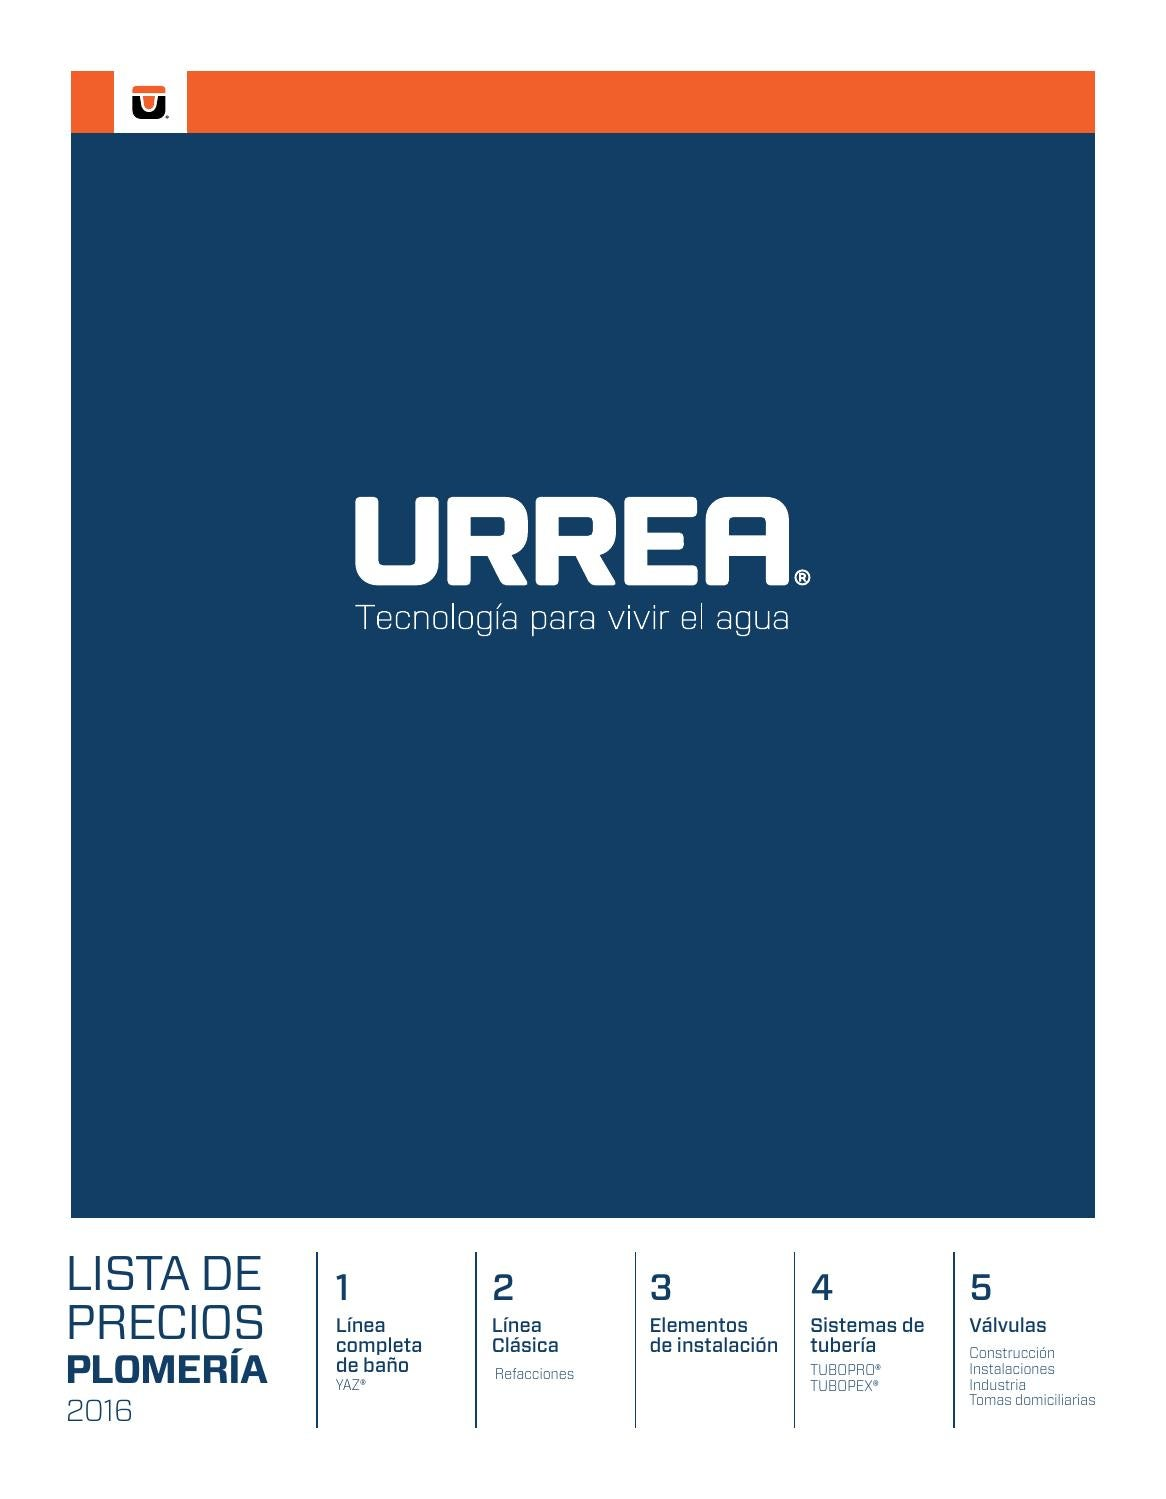 Lp urrea plomer a 2016 by urrea m xico issuu for Urrea llaves para bano